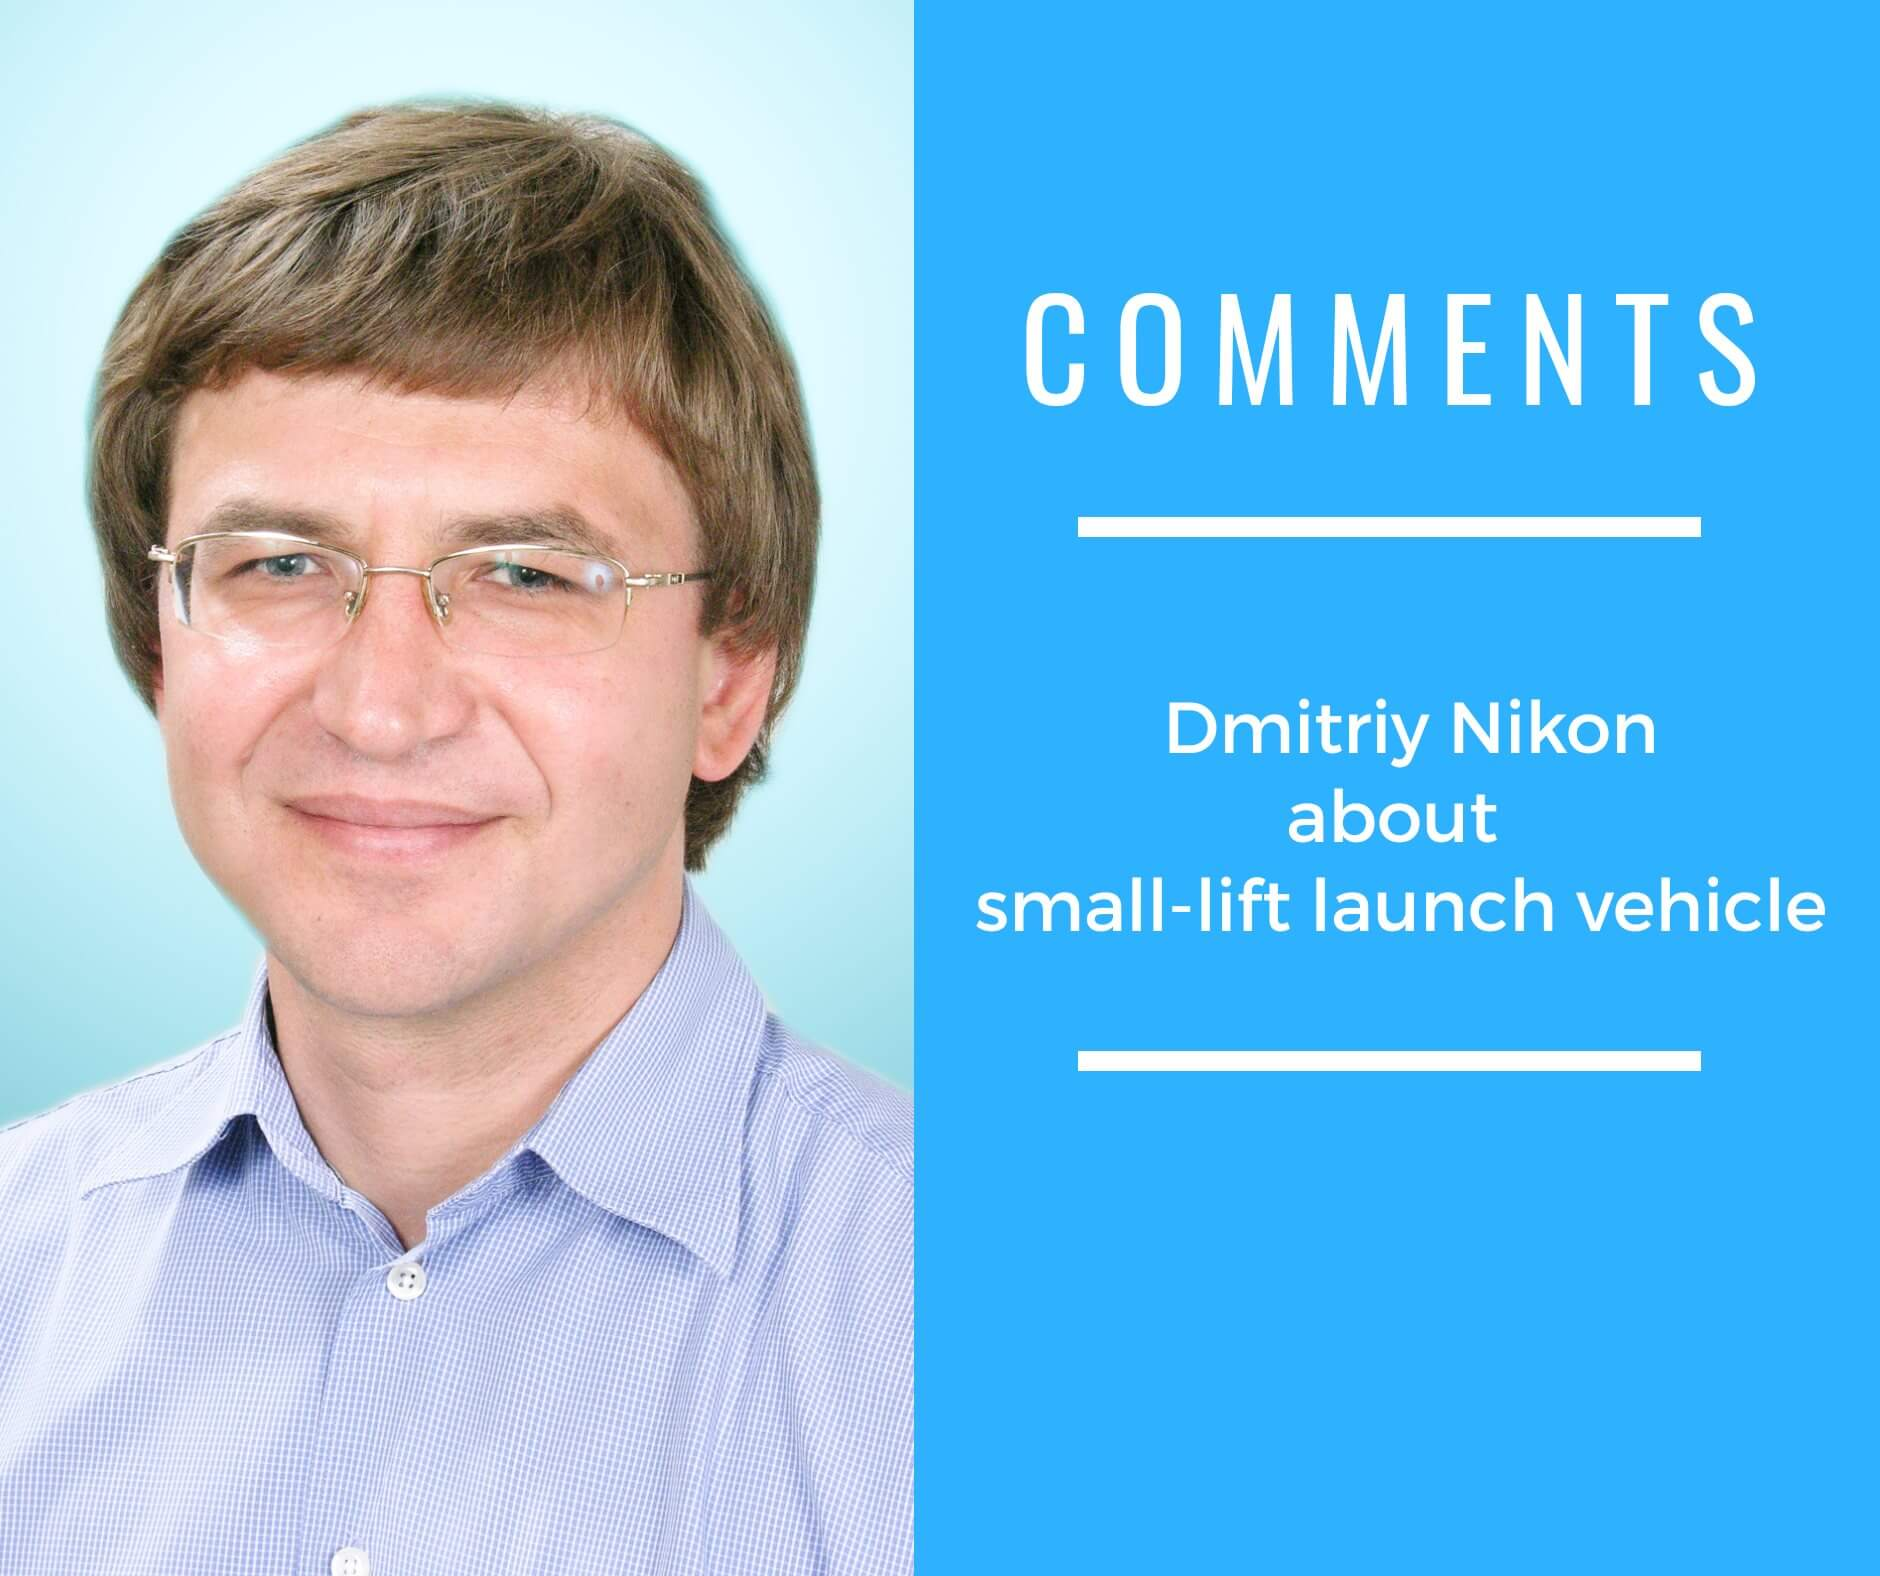 Dmitriy Nikon about small-lift launch vehicle